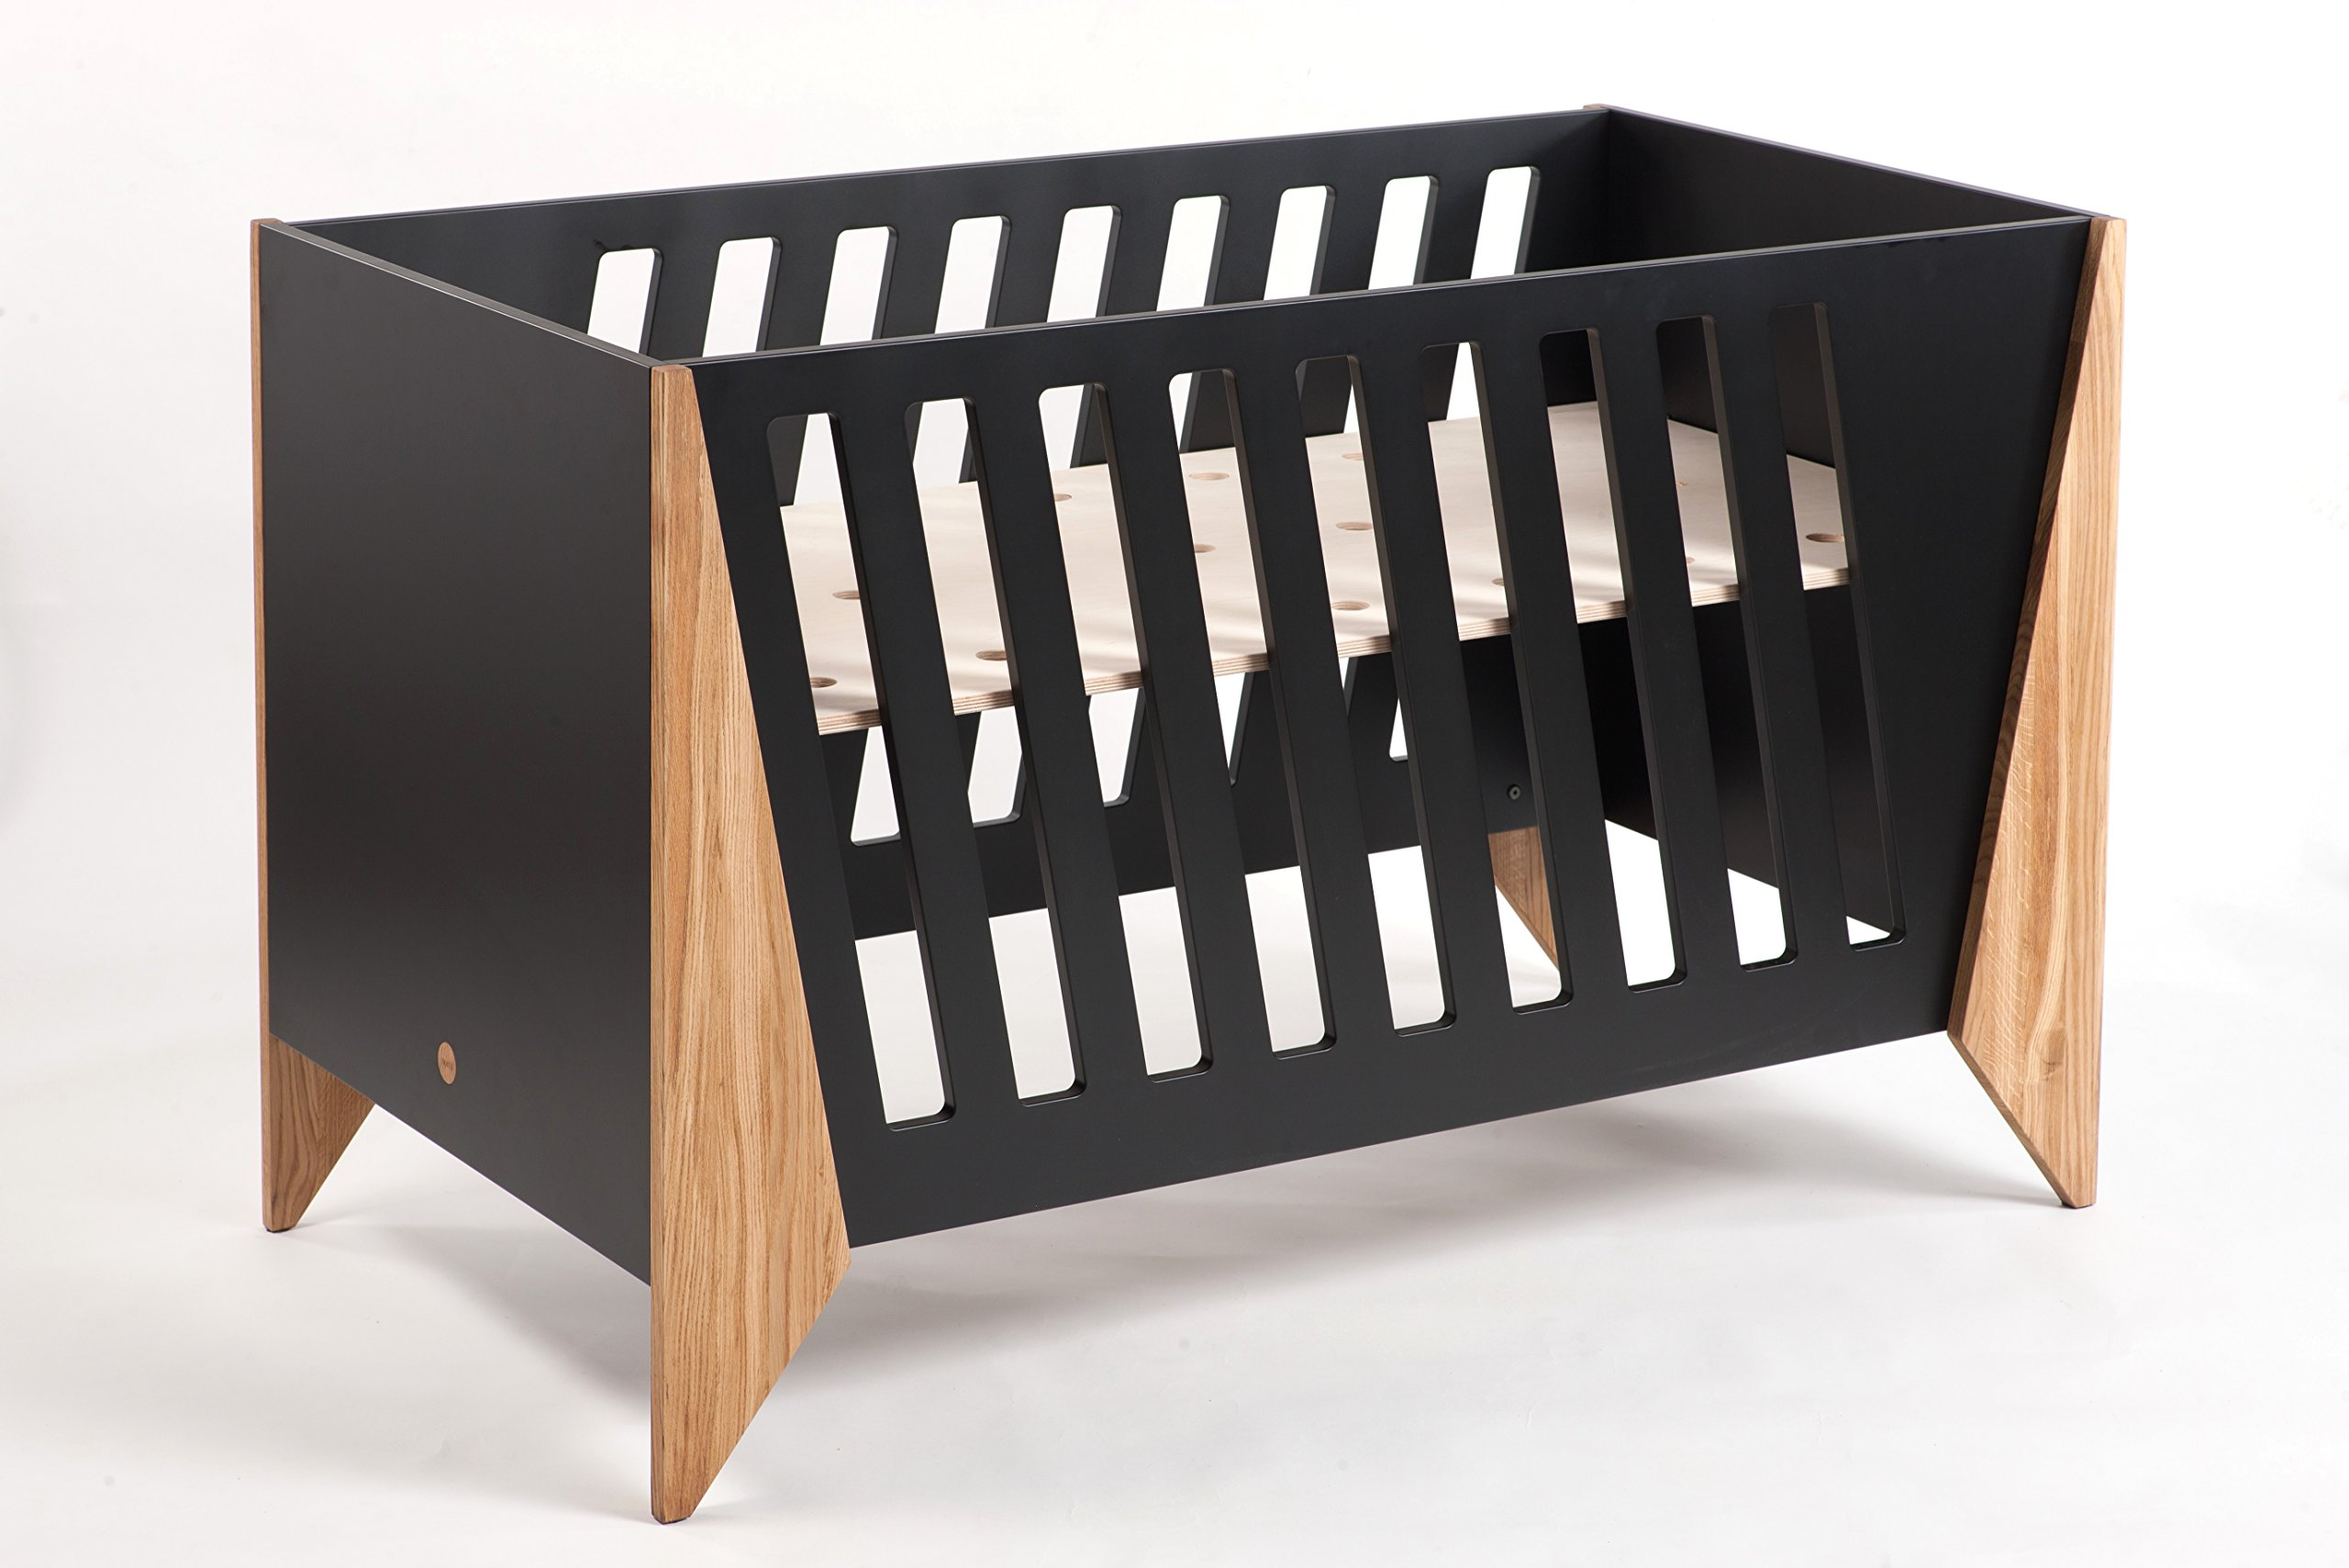 Nursery Cot (Black)  Made from high quality materials Mattress included Unique Scandinavian design 3